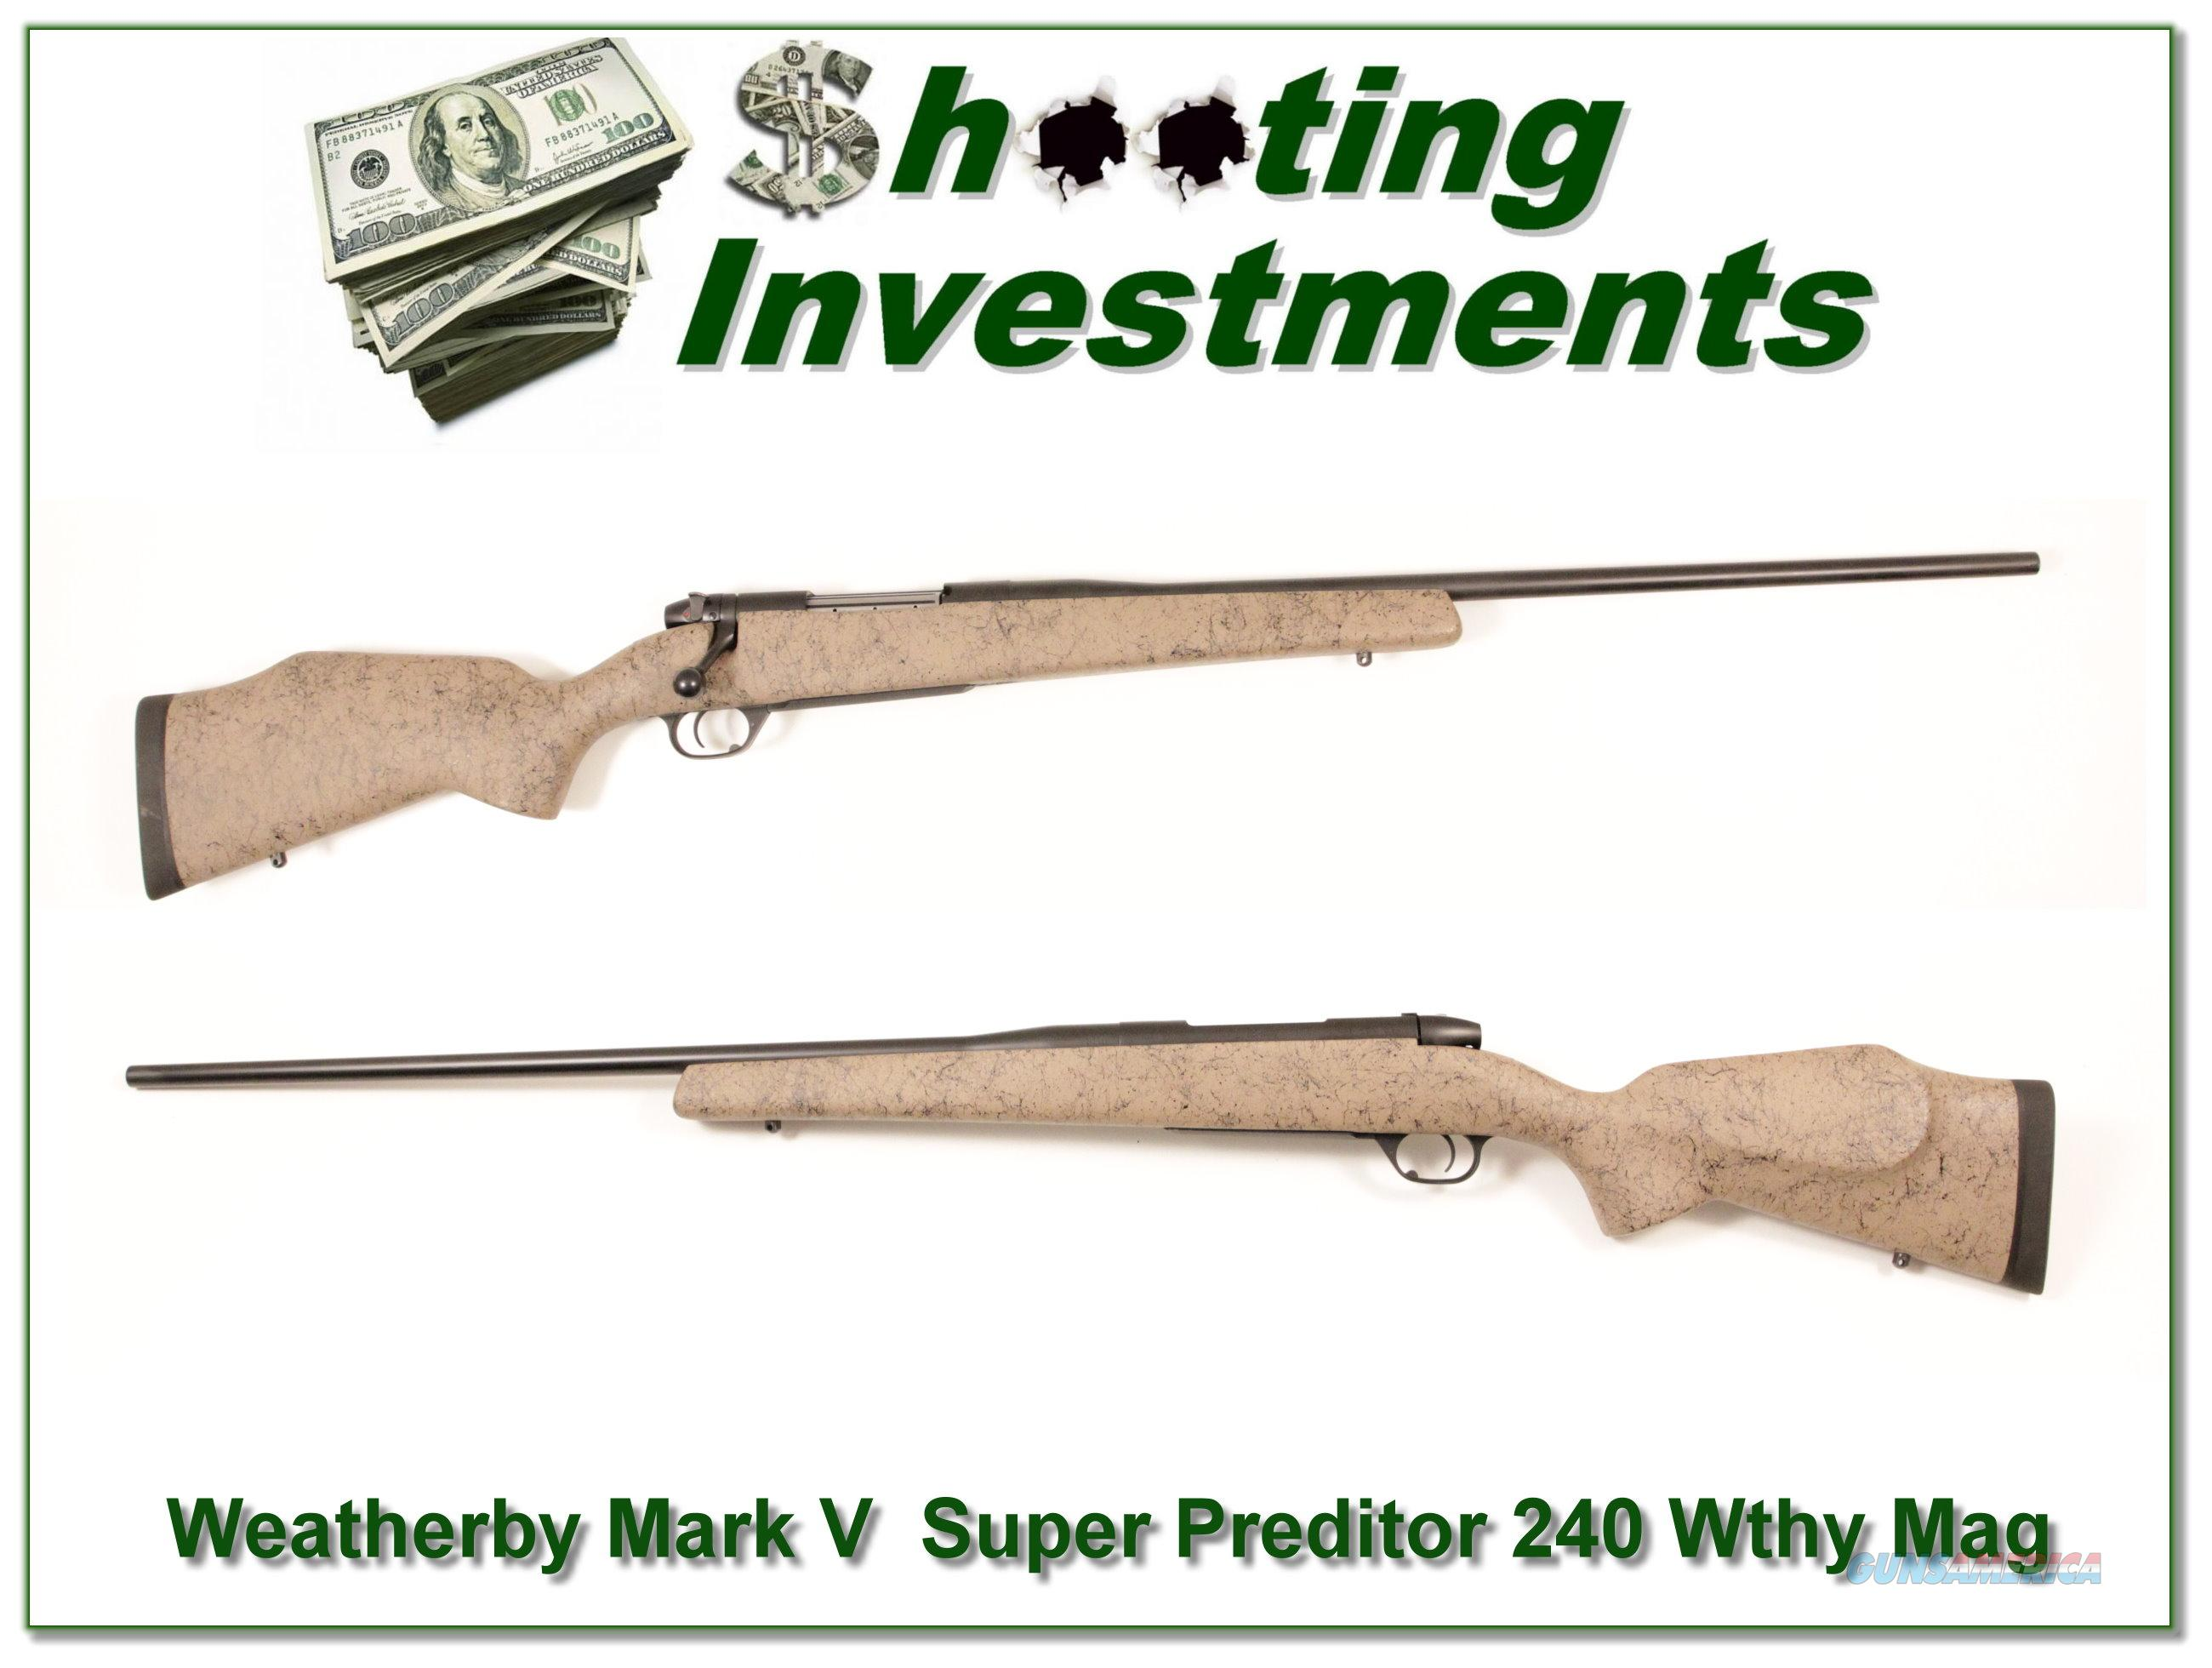 Weatherby Mark V Super Predator Master 240 Wthy mag  Guns > Rifles > Weatherby Rifles > Sporting